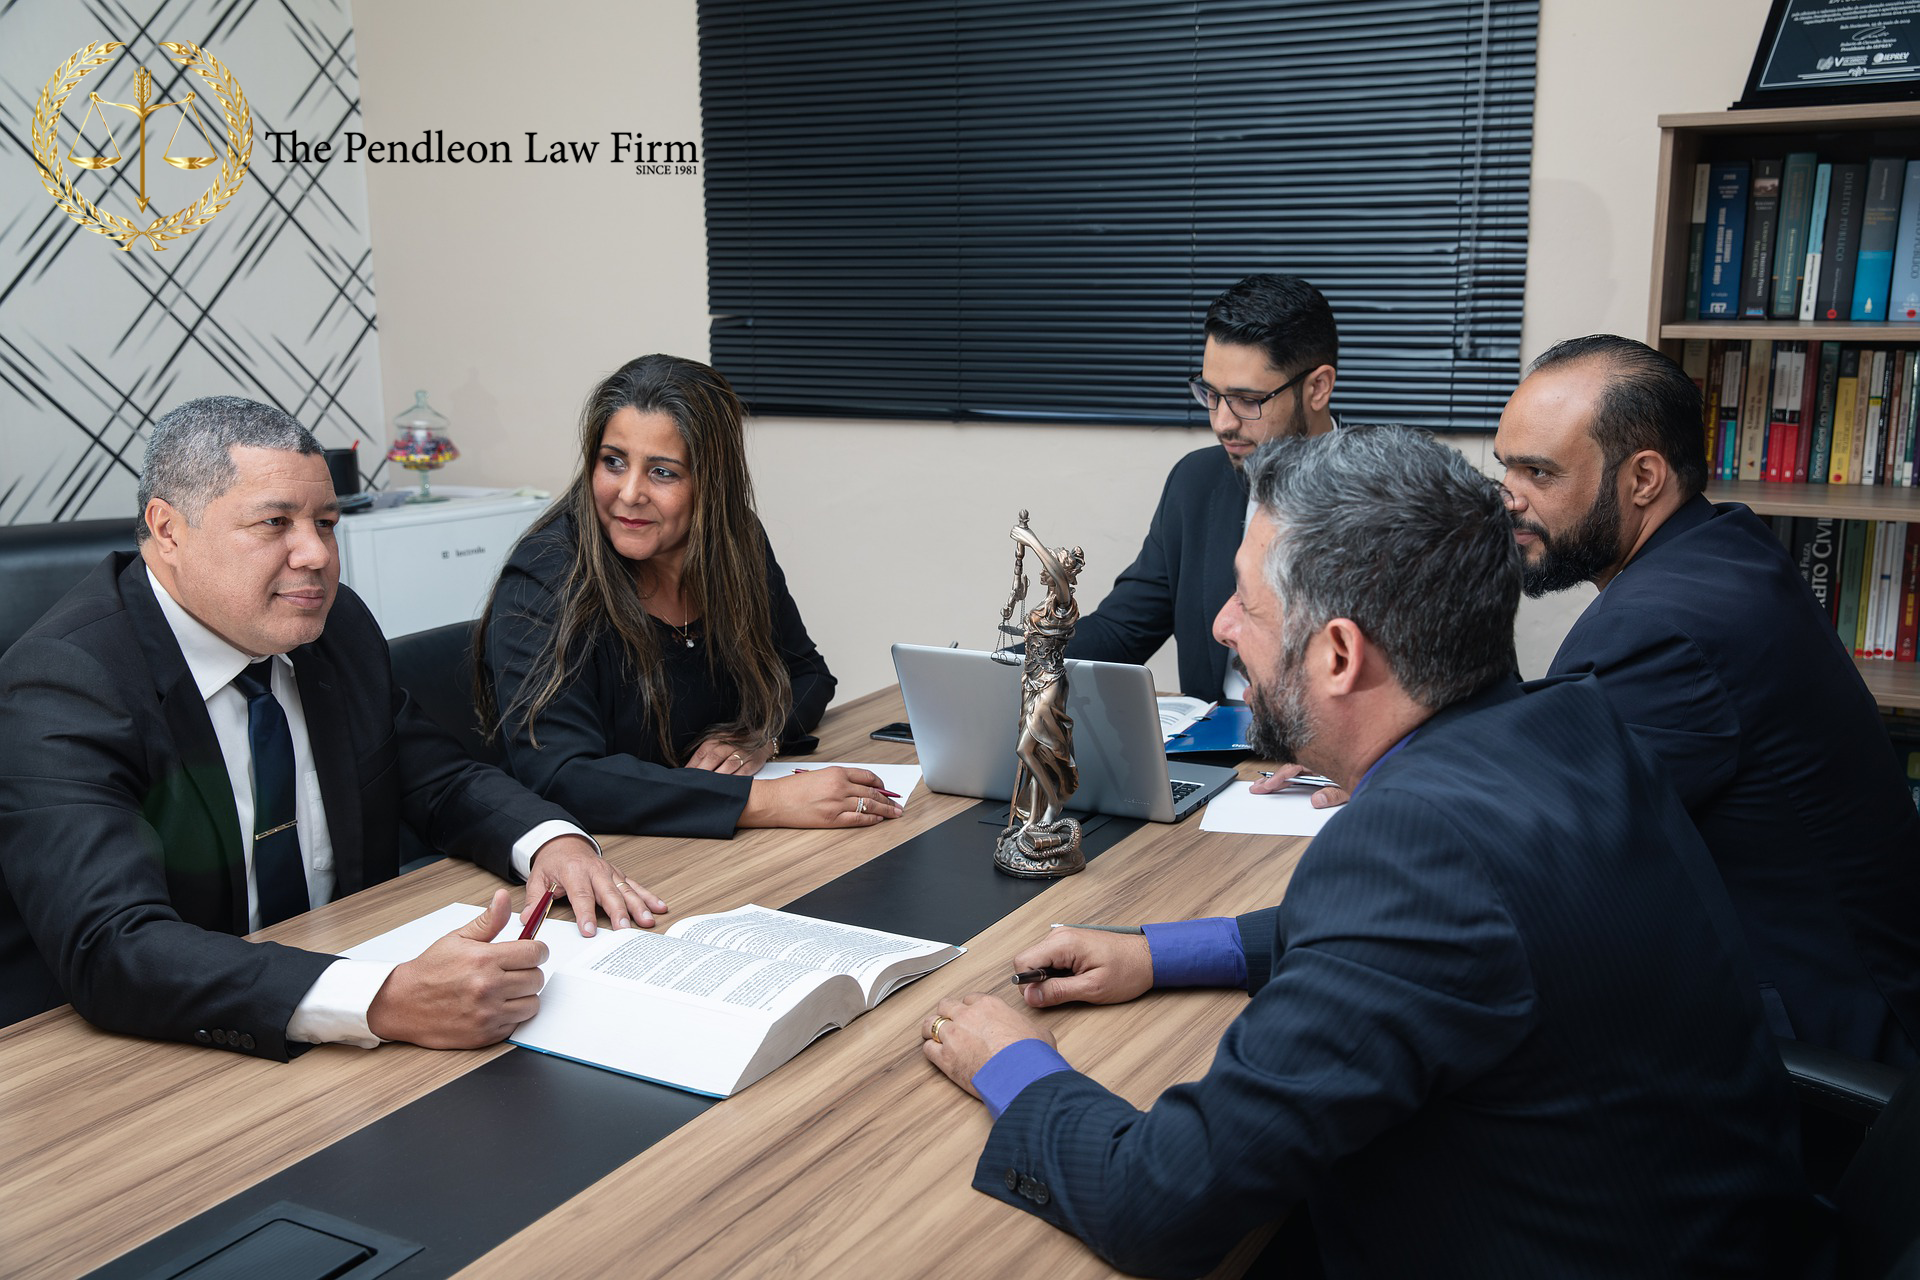 The Pendleon Law Firm